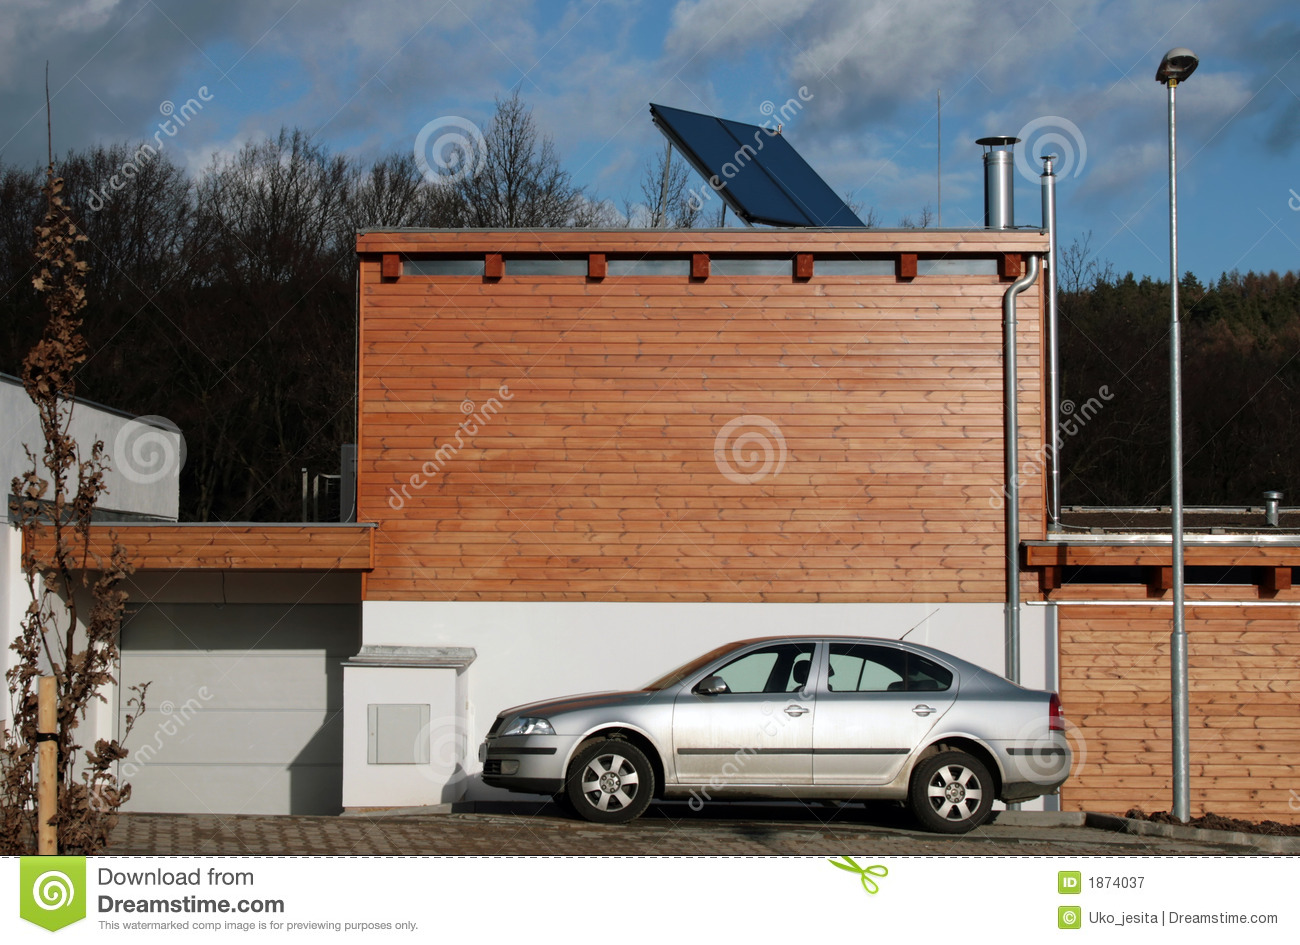 New constructed house with solar panels on the roof for water heating